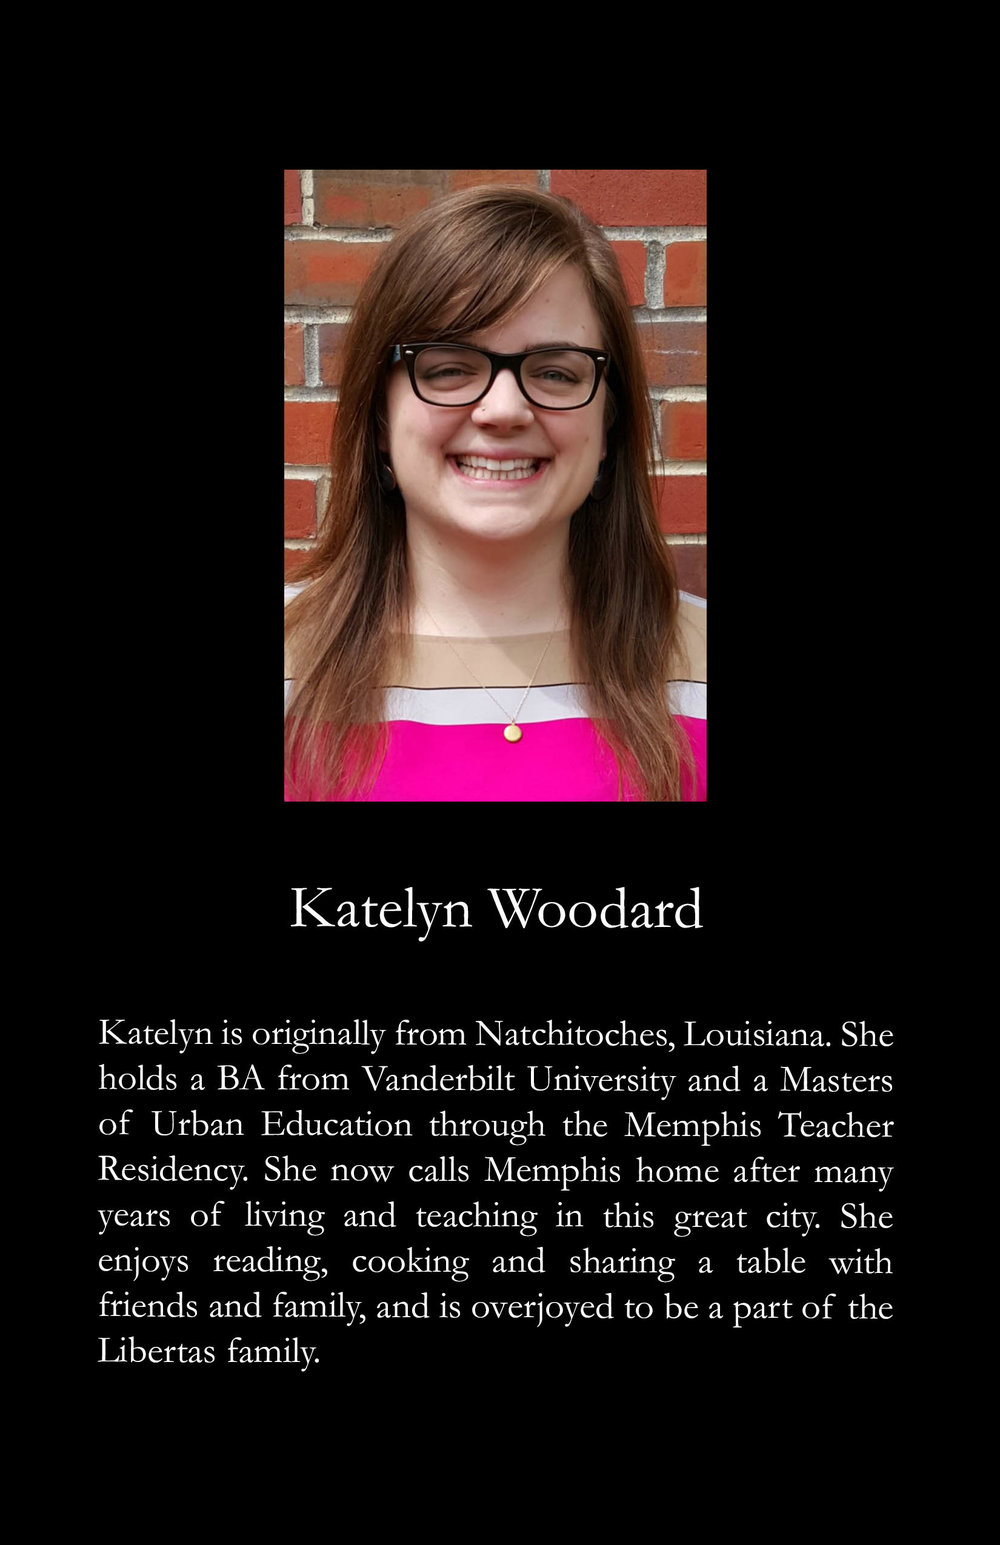 Katelyn Woodard.jpg